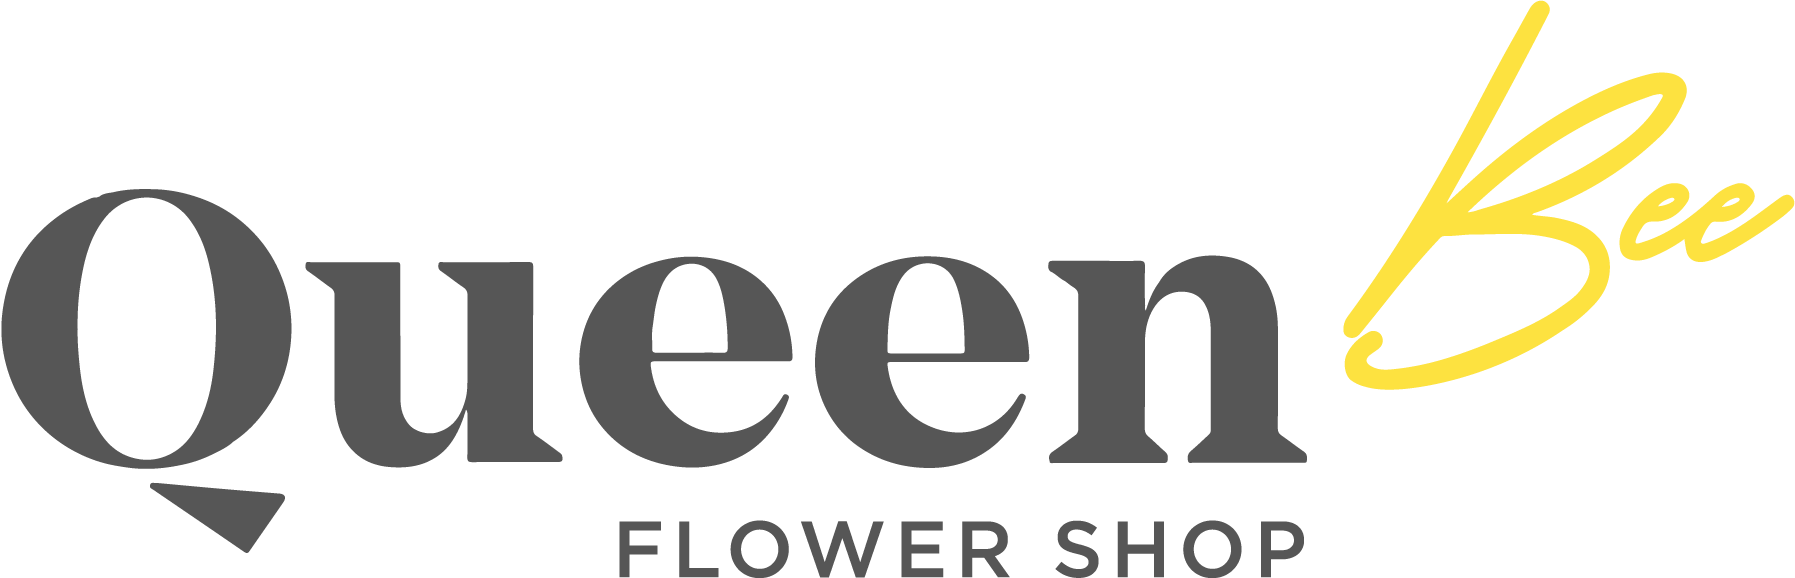 Queen Bee Flowers – Vancouver Flower Shop & Delivery Service